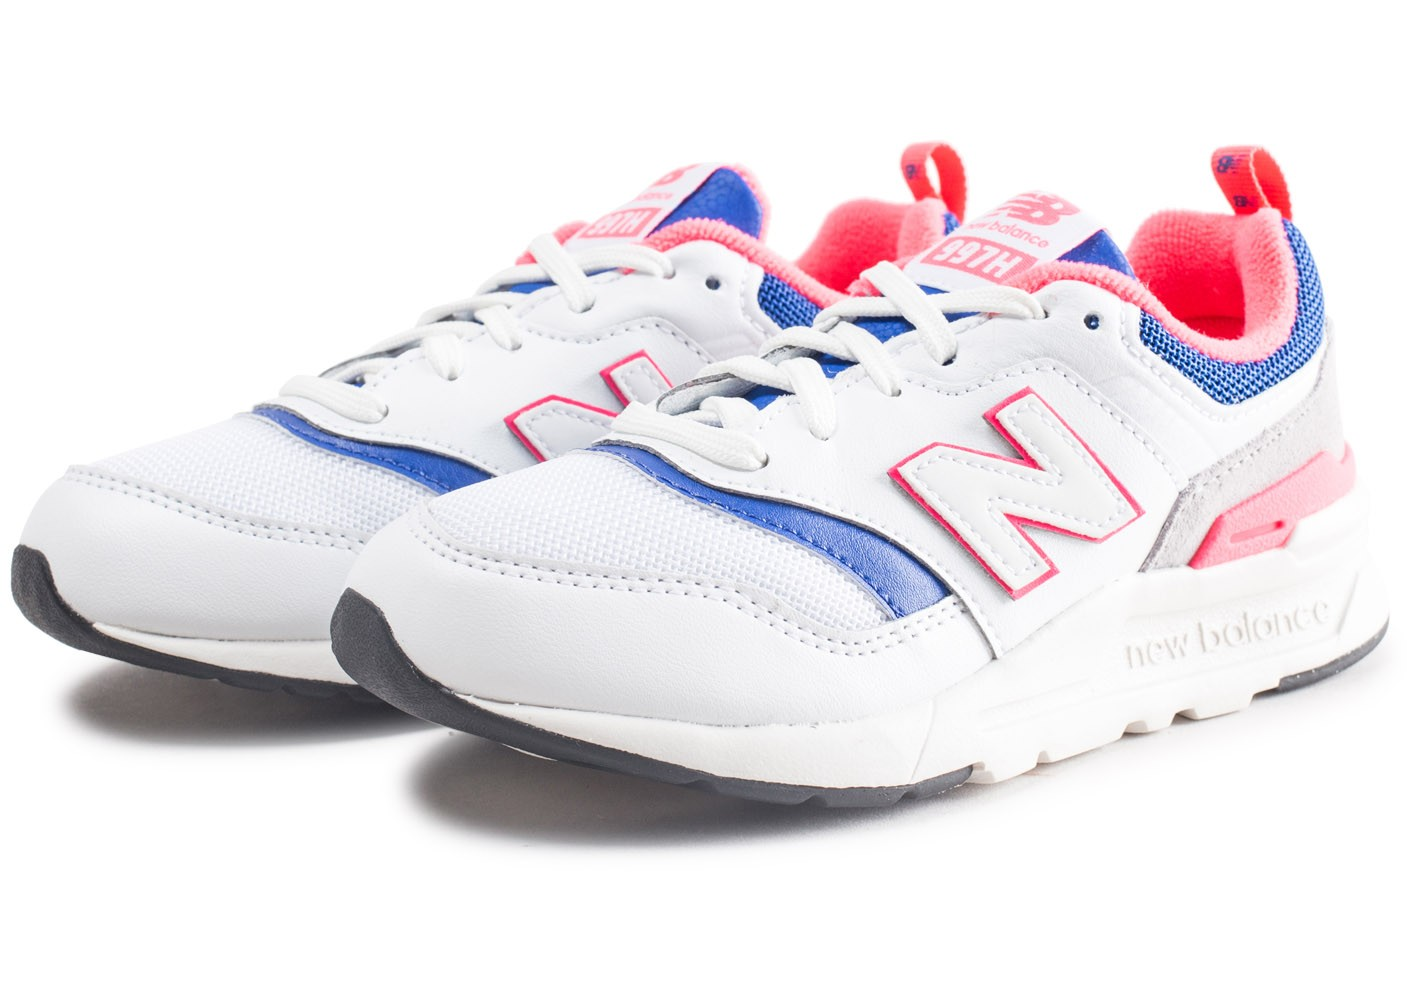 new concept d9054 322cd 15728-chaussures-new-balance-997-blanc-violet-rose-enfant-vue-avant.jpg